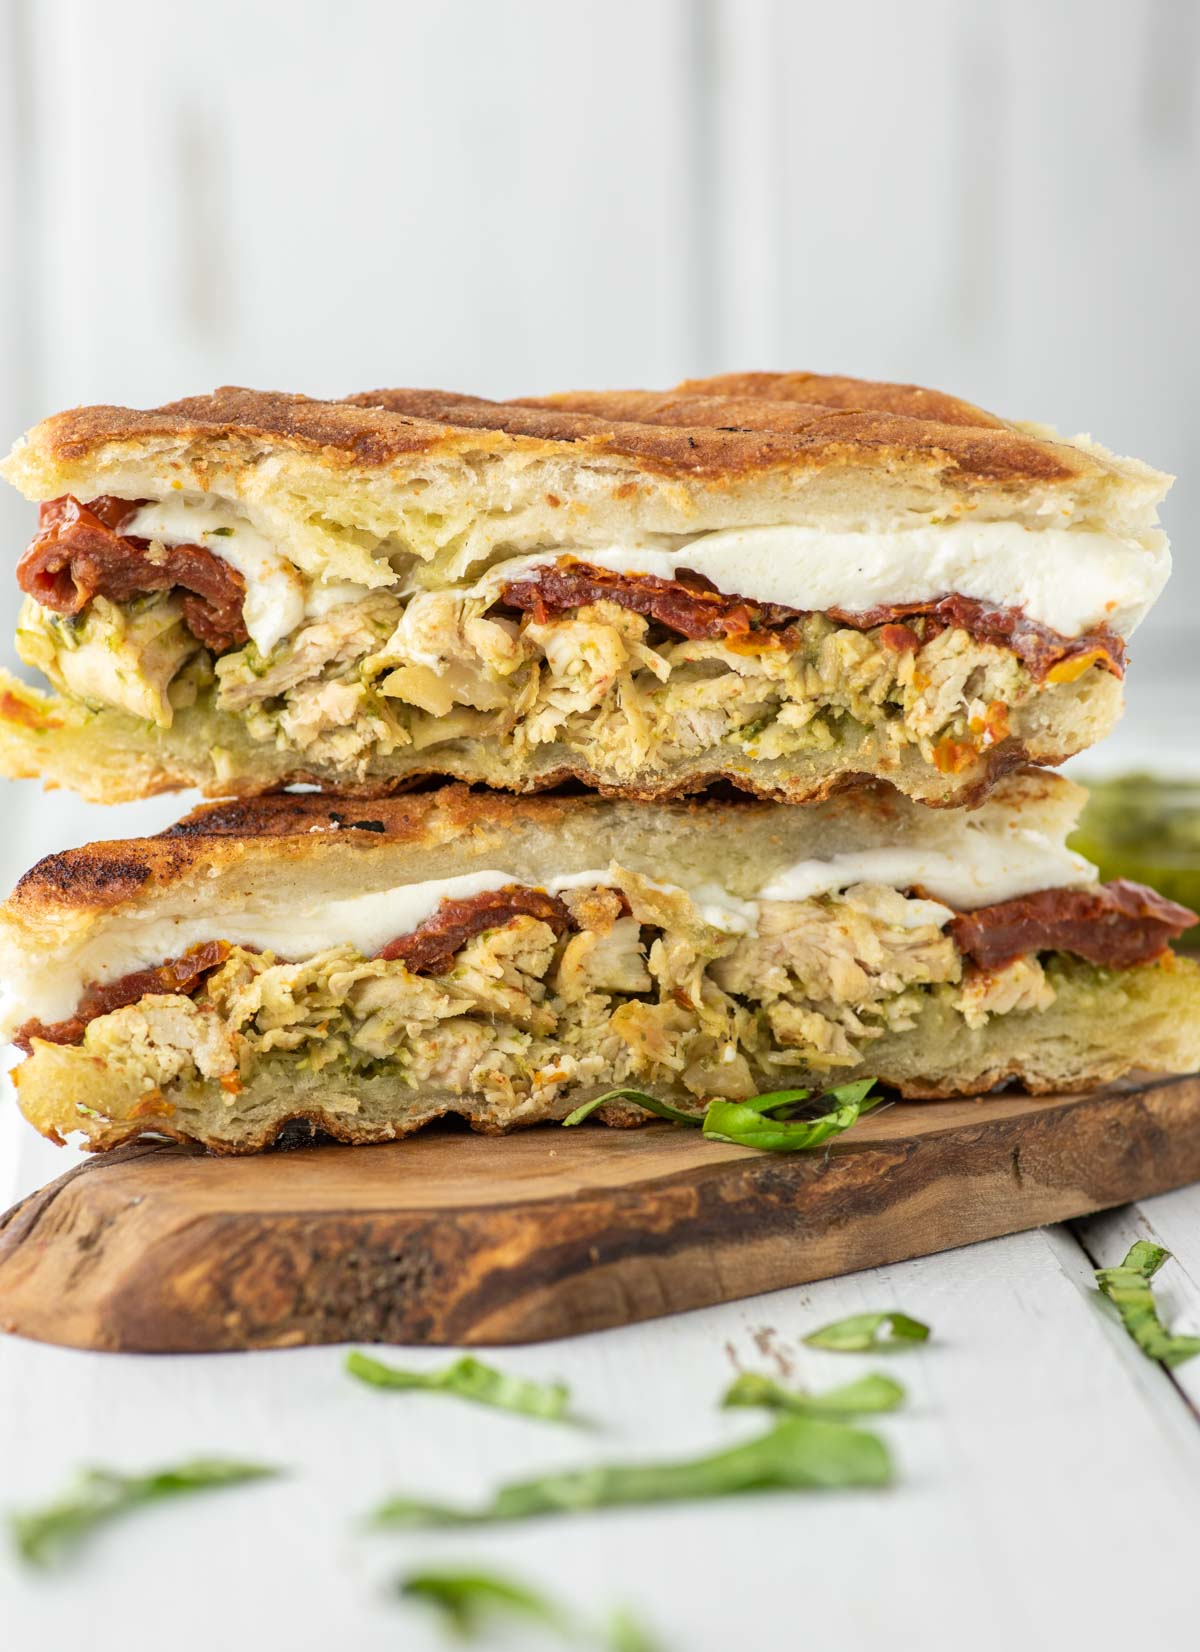 two slices of chicken pesto panini on wood board